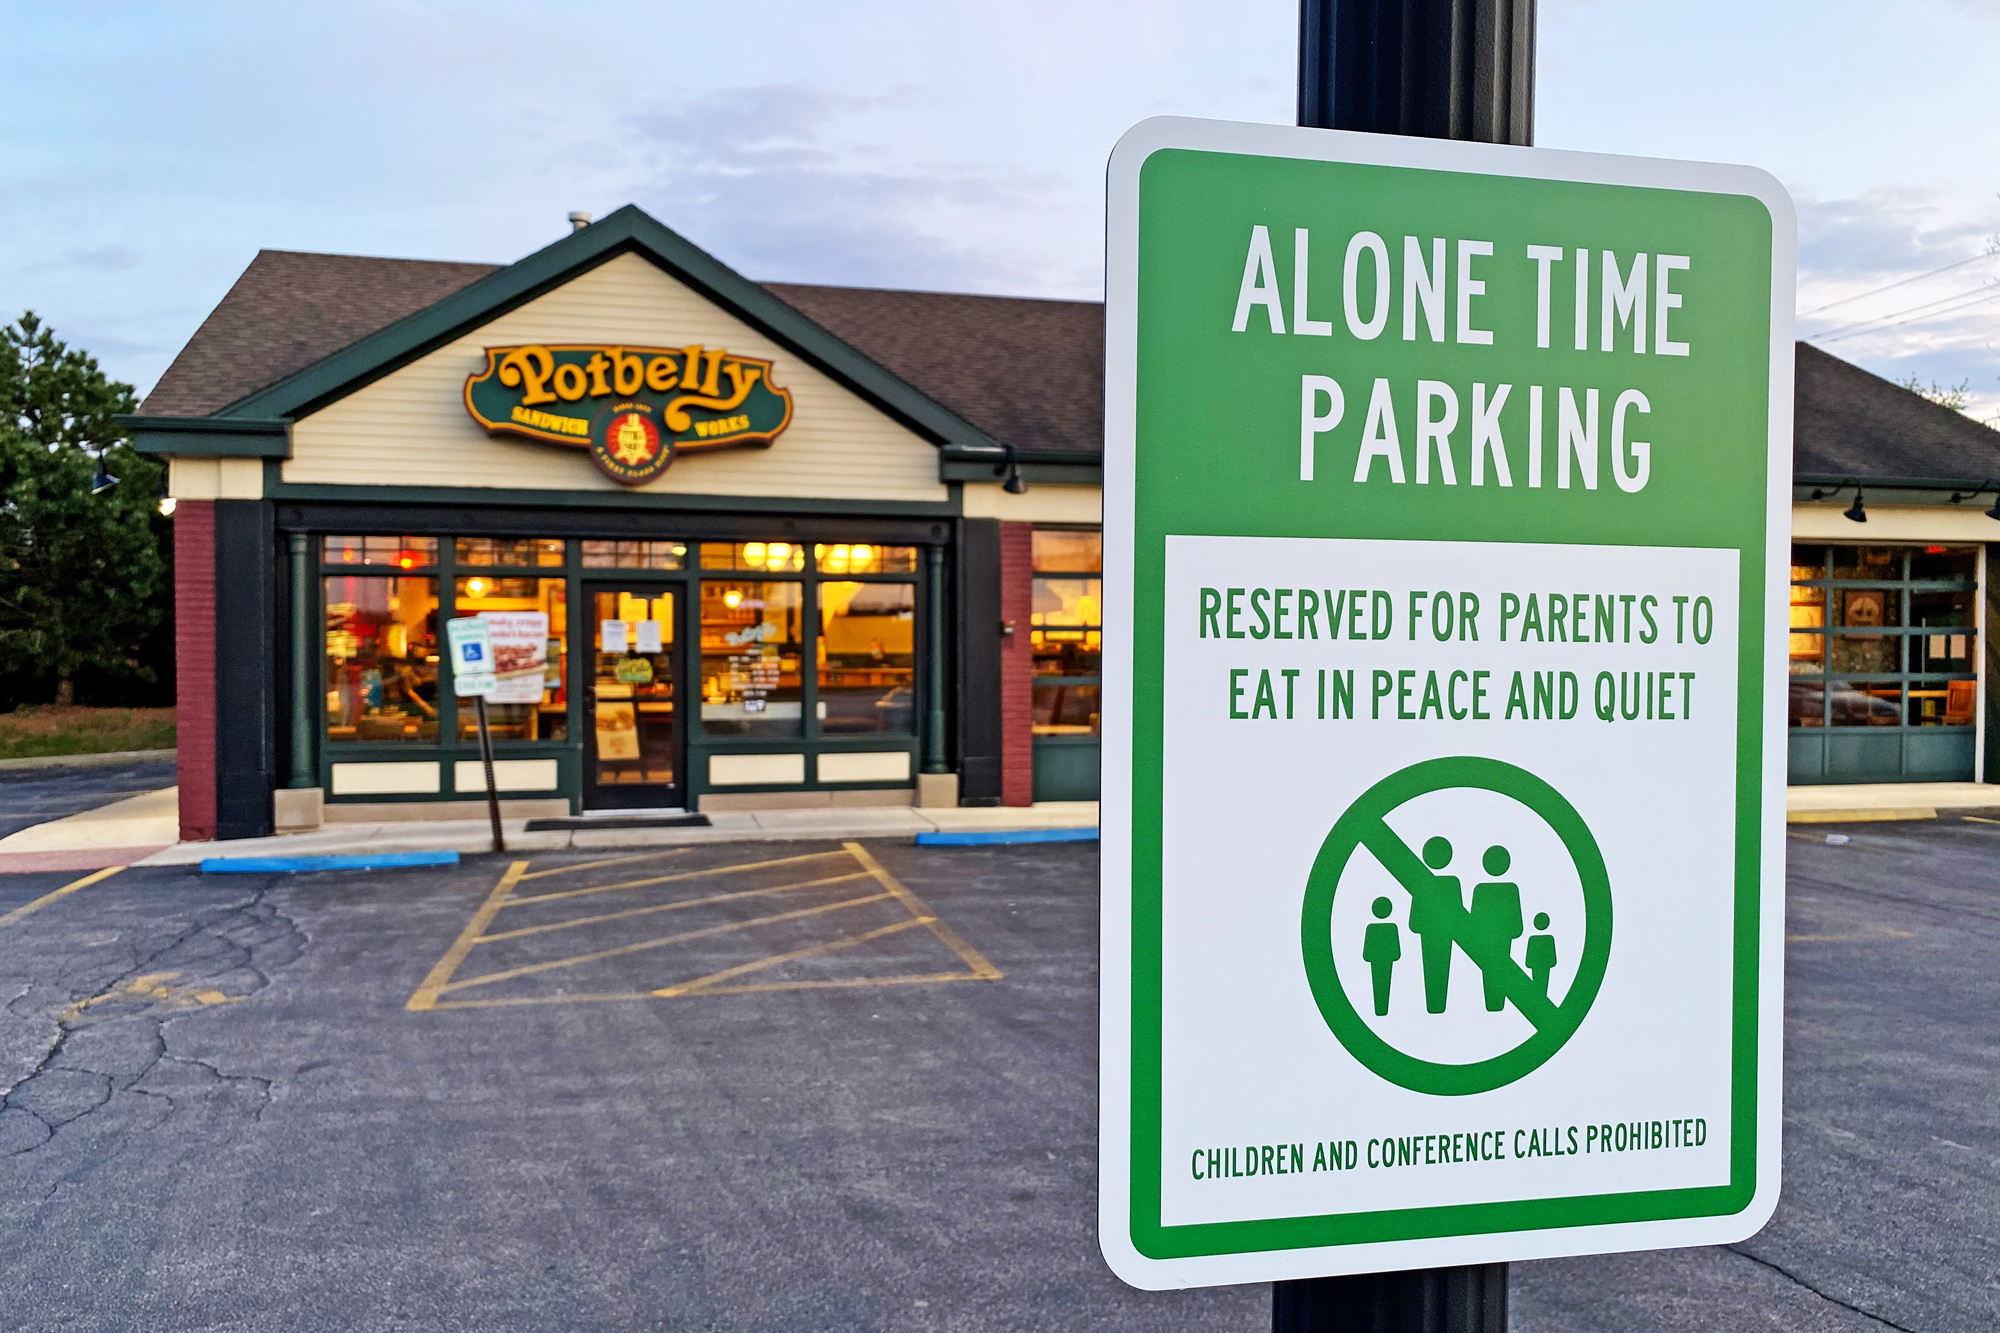 Restaurant Parking Lots Become Alone Time Space for Parents